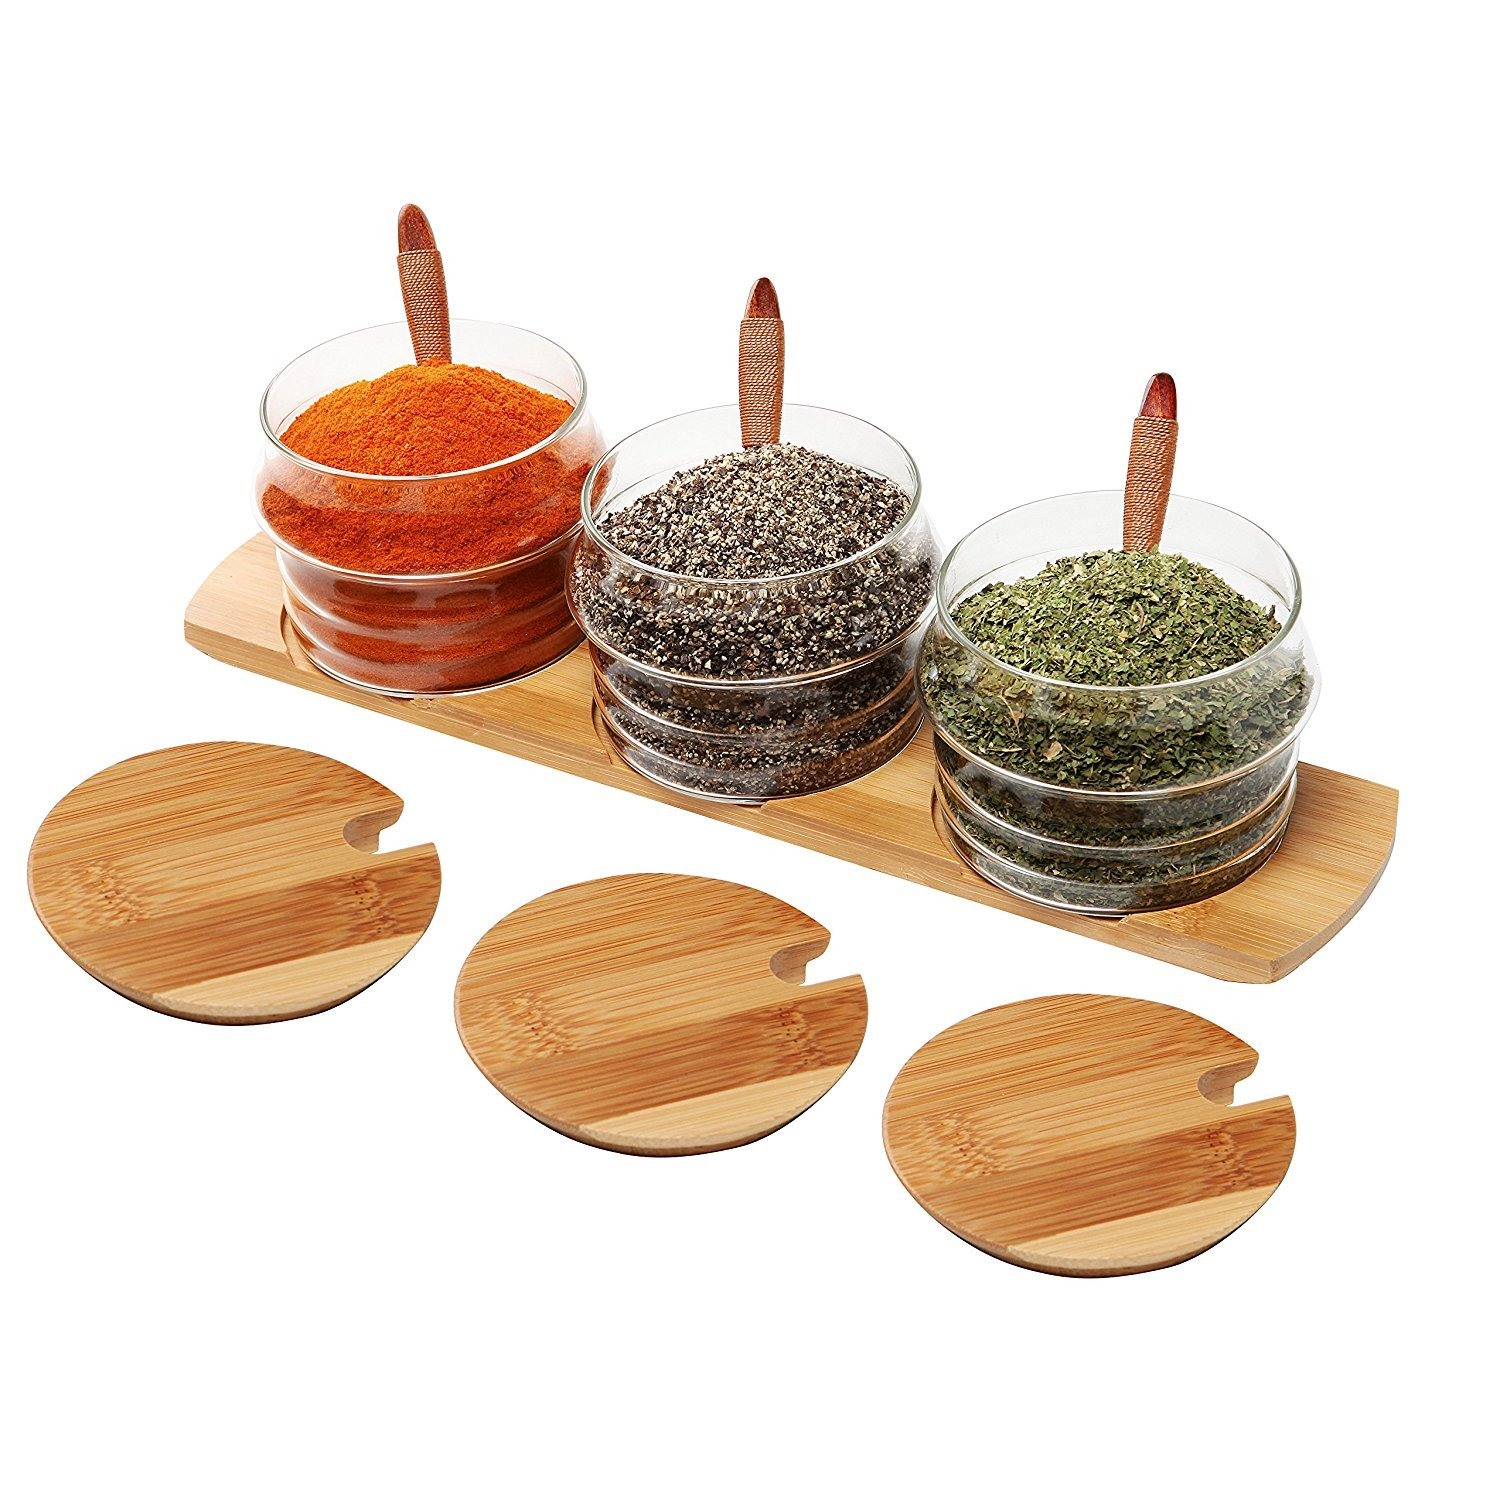 iRSE Glass Condiment Jars with bamboo tray and wood spoon for condiment pots, spice jars, sugar bowls, tea storage, nuts jar, holding dressings, dipping, salad bar serving, Set of 3